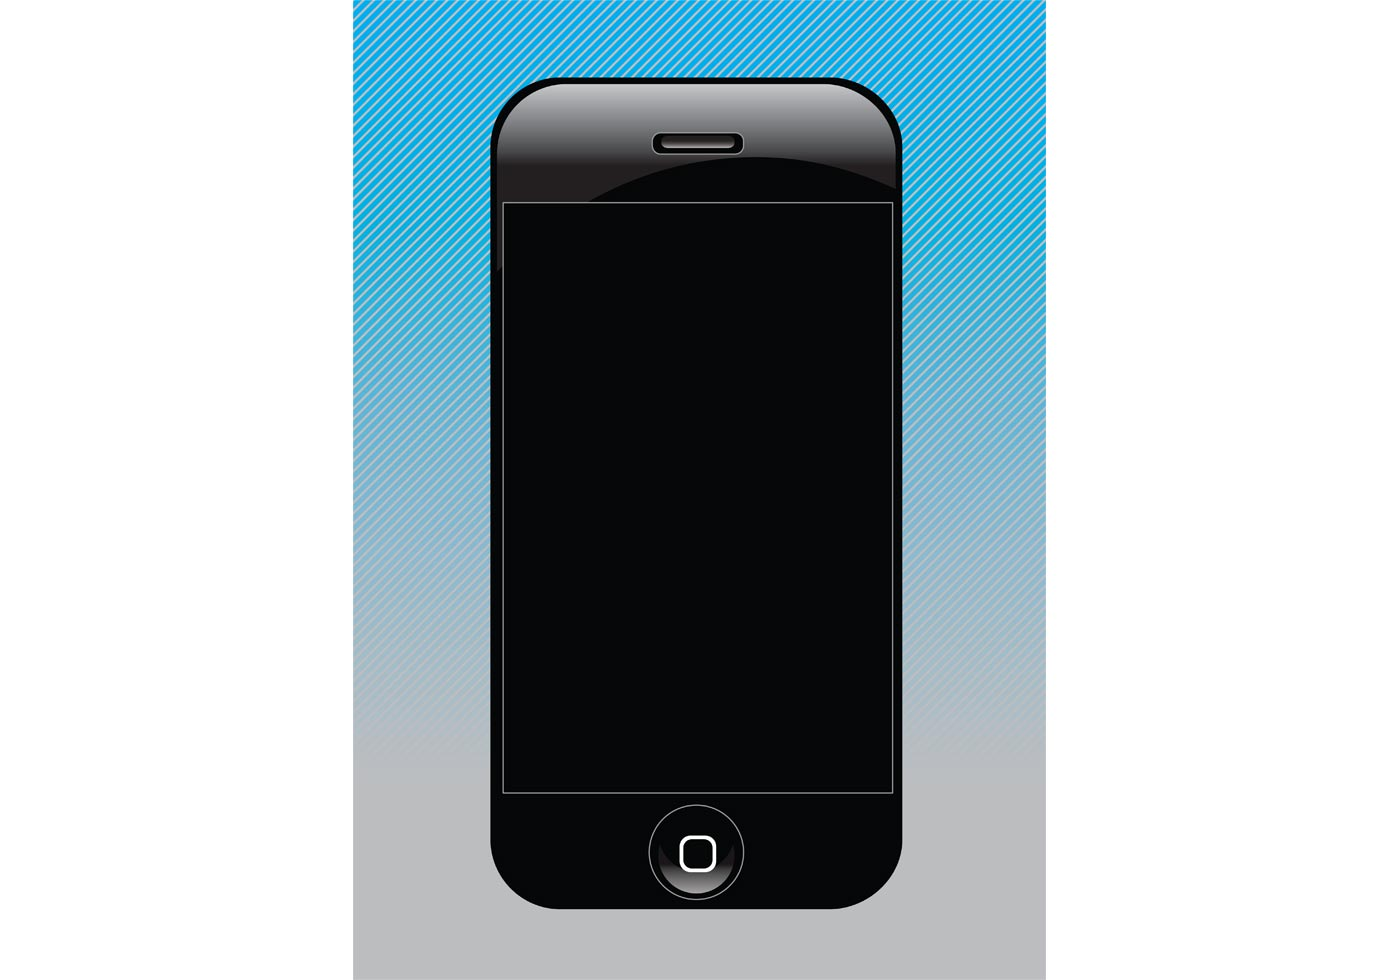 clipart transfer iphone pc - photo #26